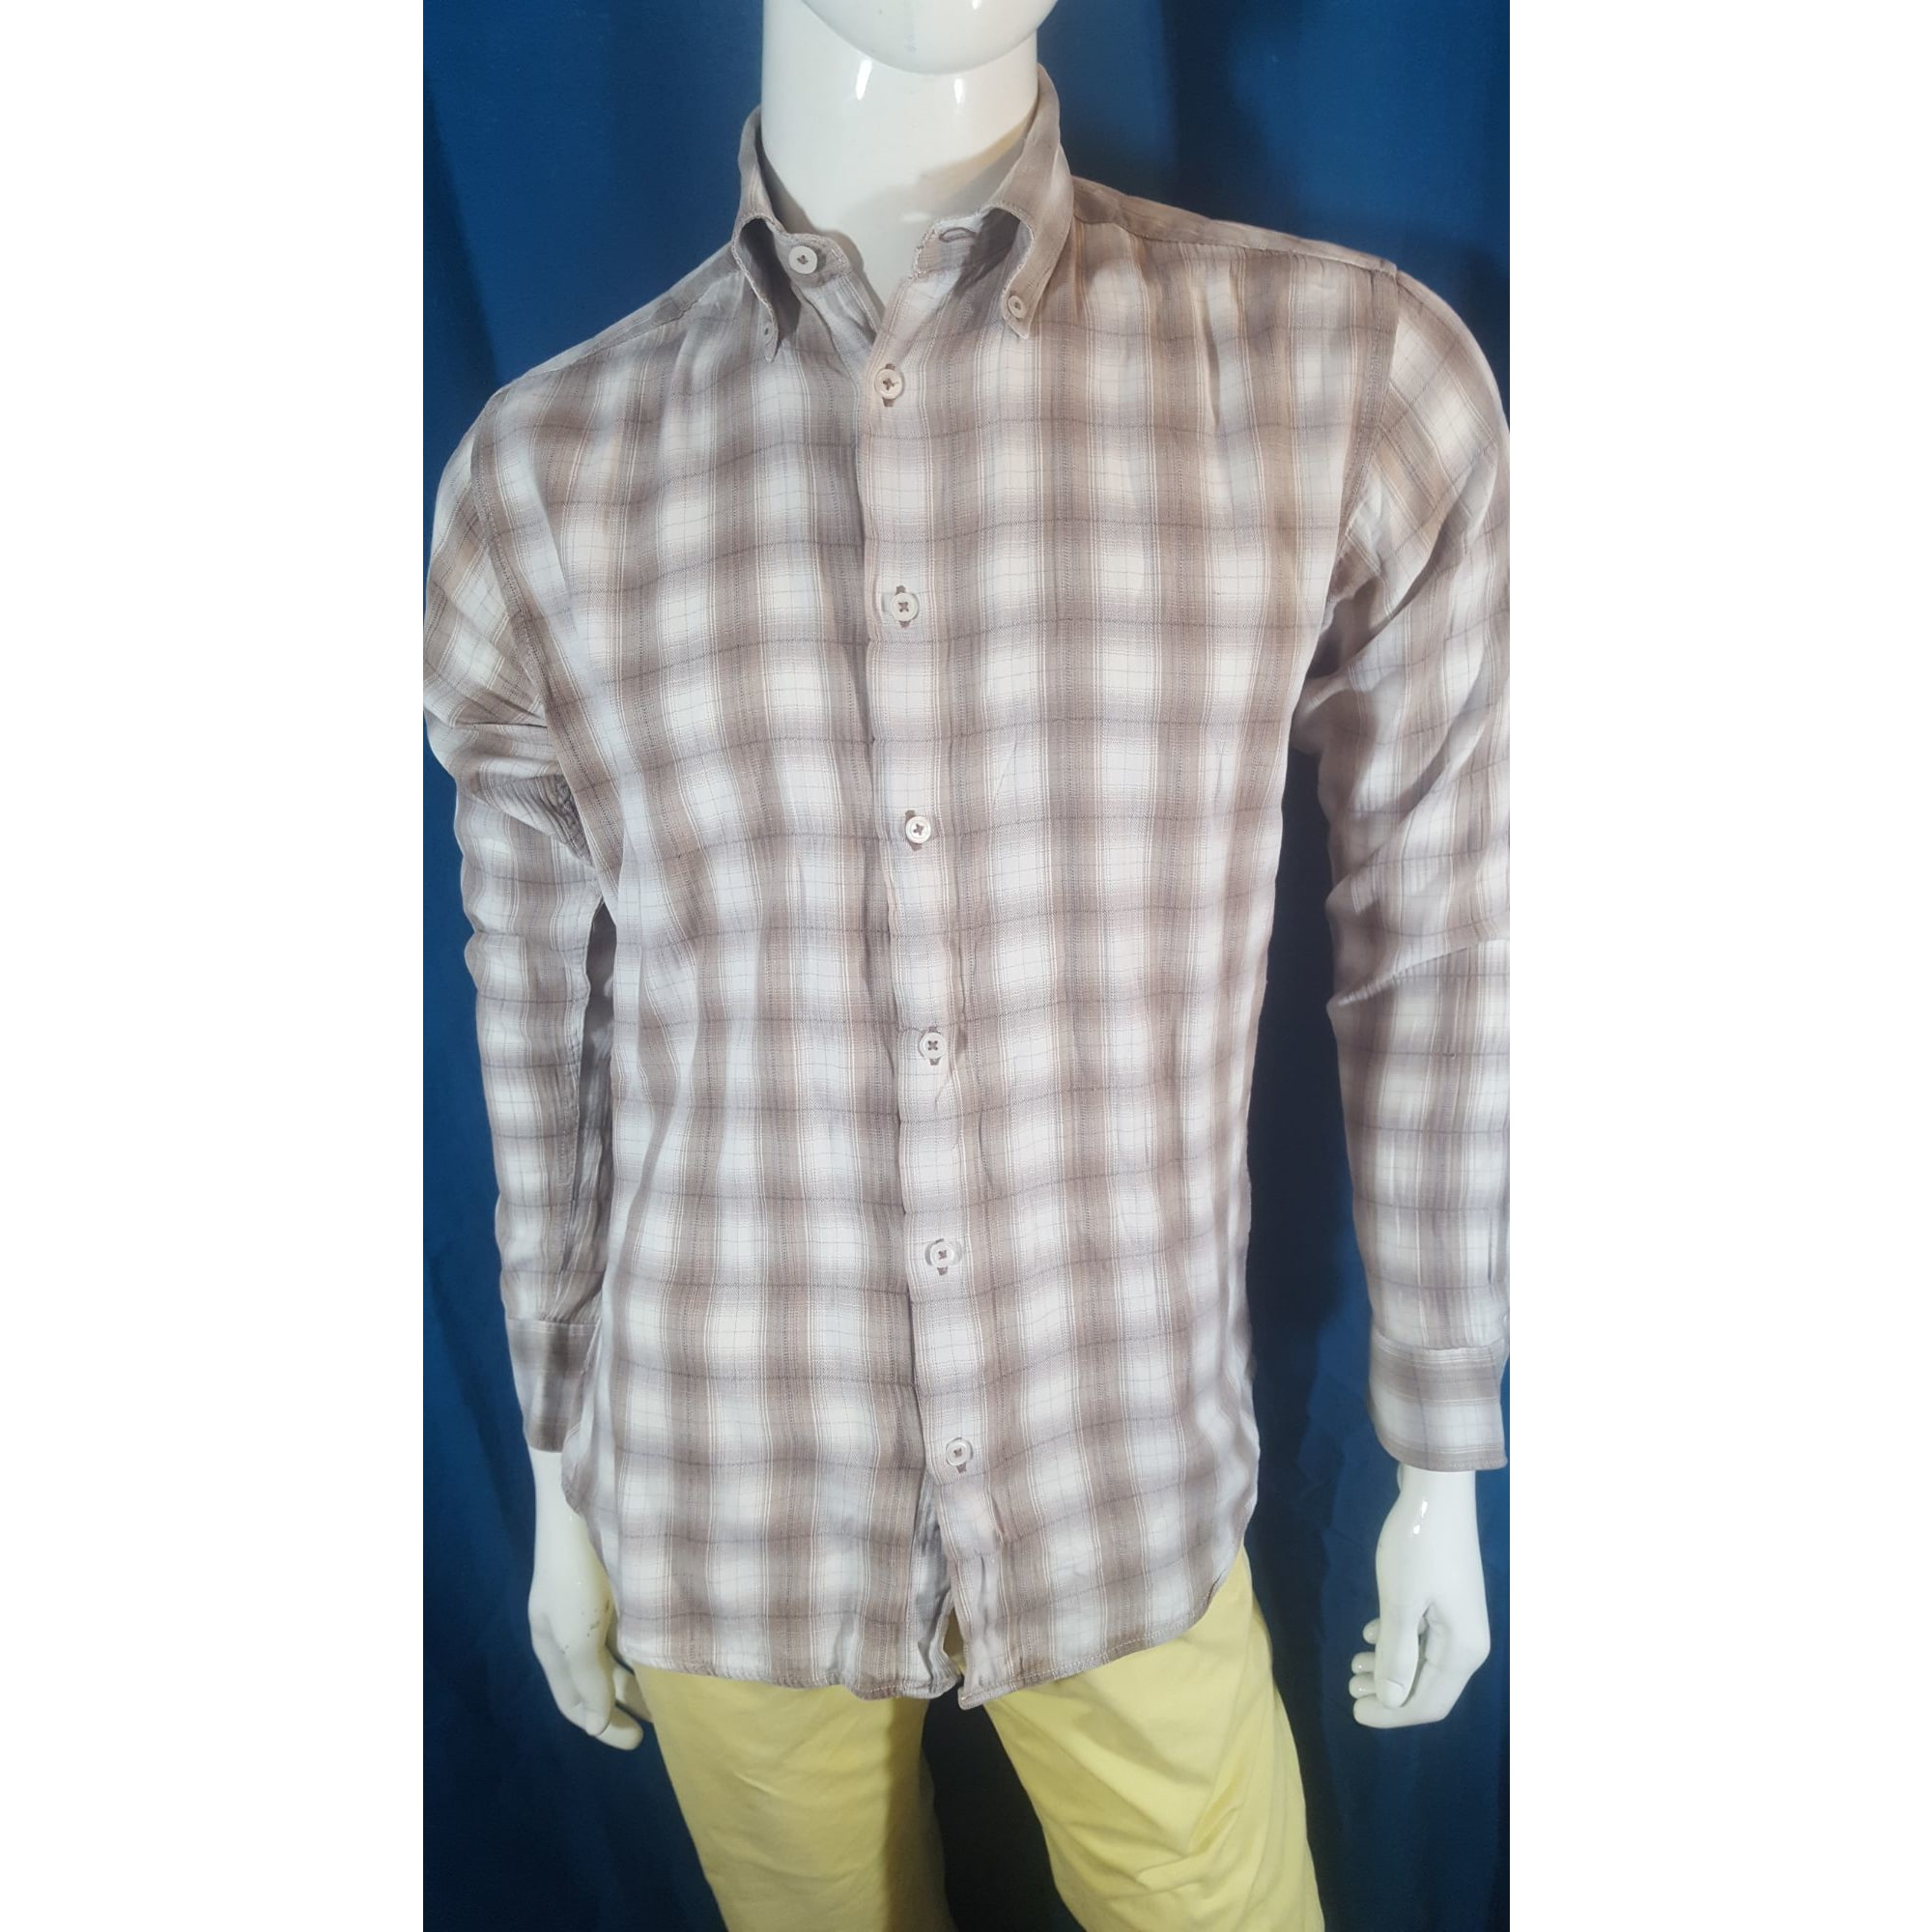 Chemise ARMAND THIERY Beige, camel